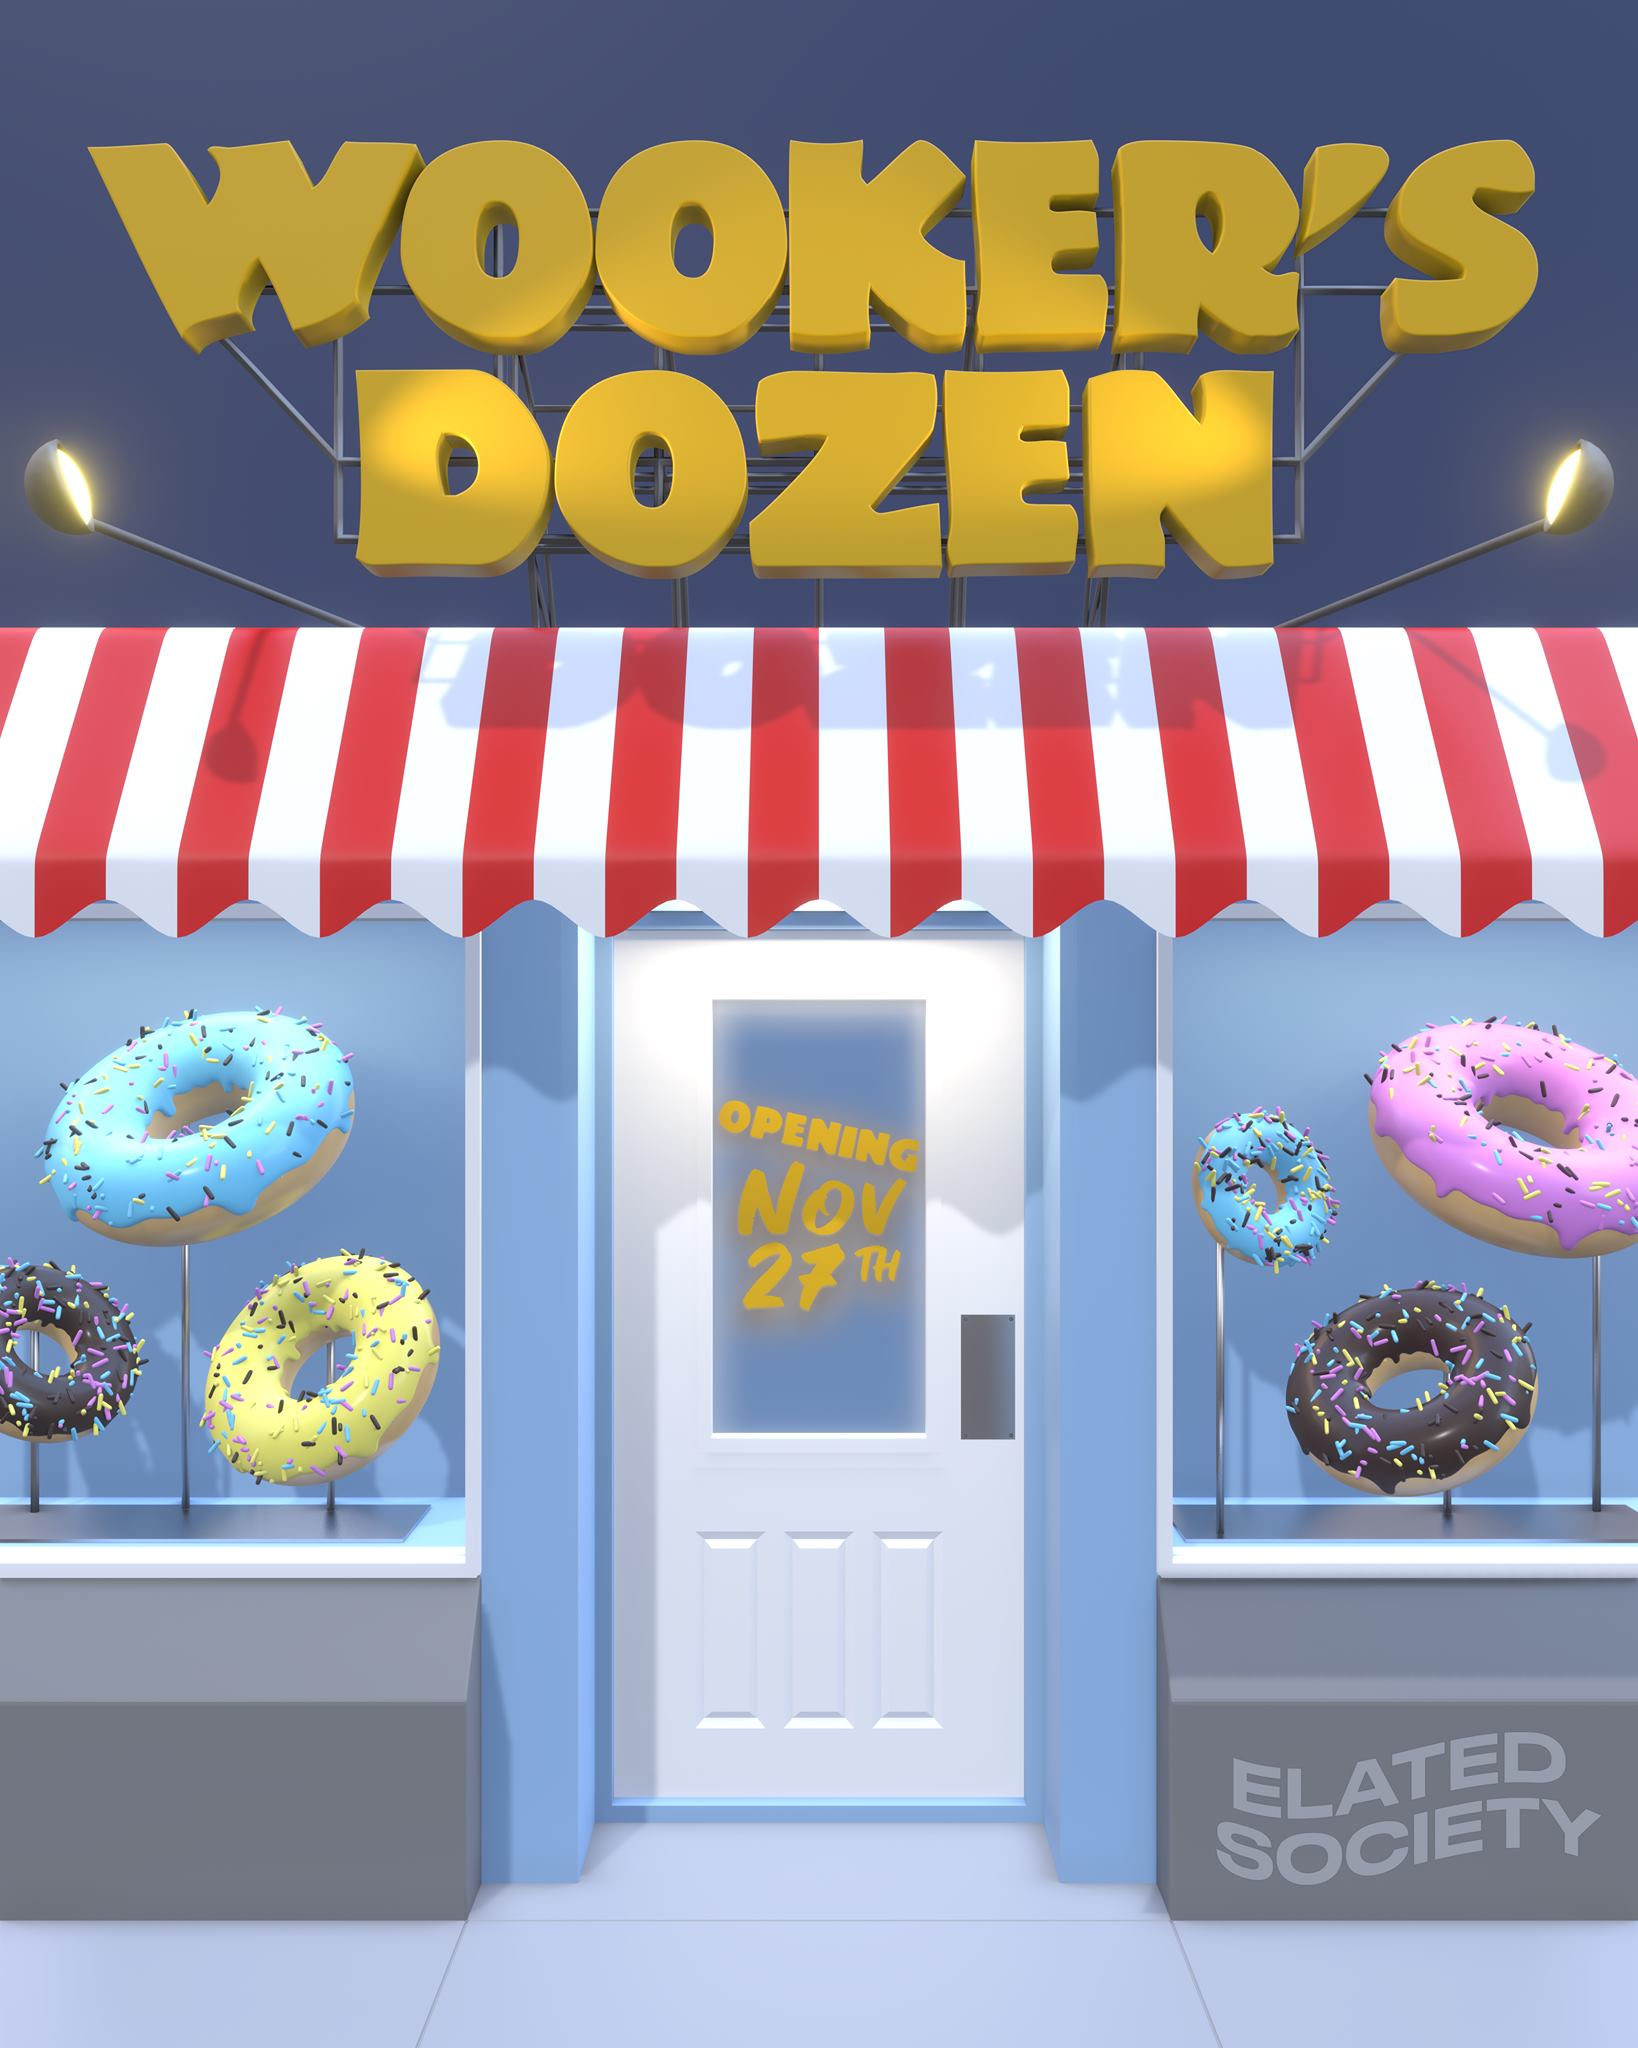 FEATURED LOCAL MUSIC: Wooker's Dozen